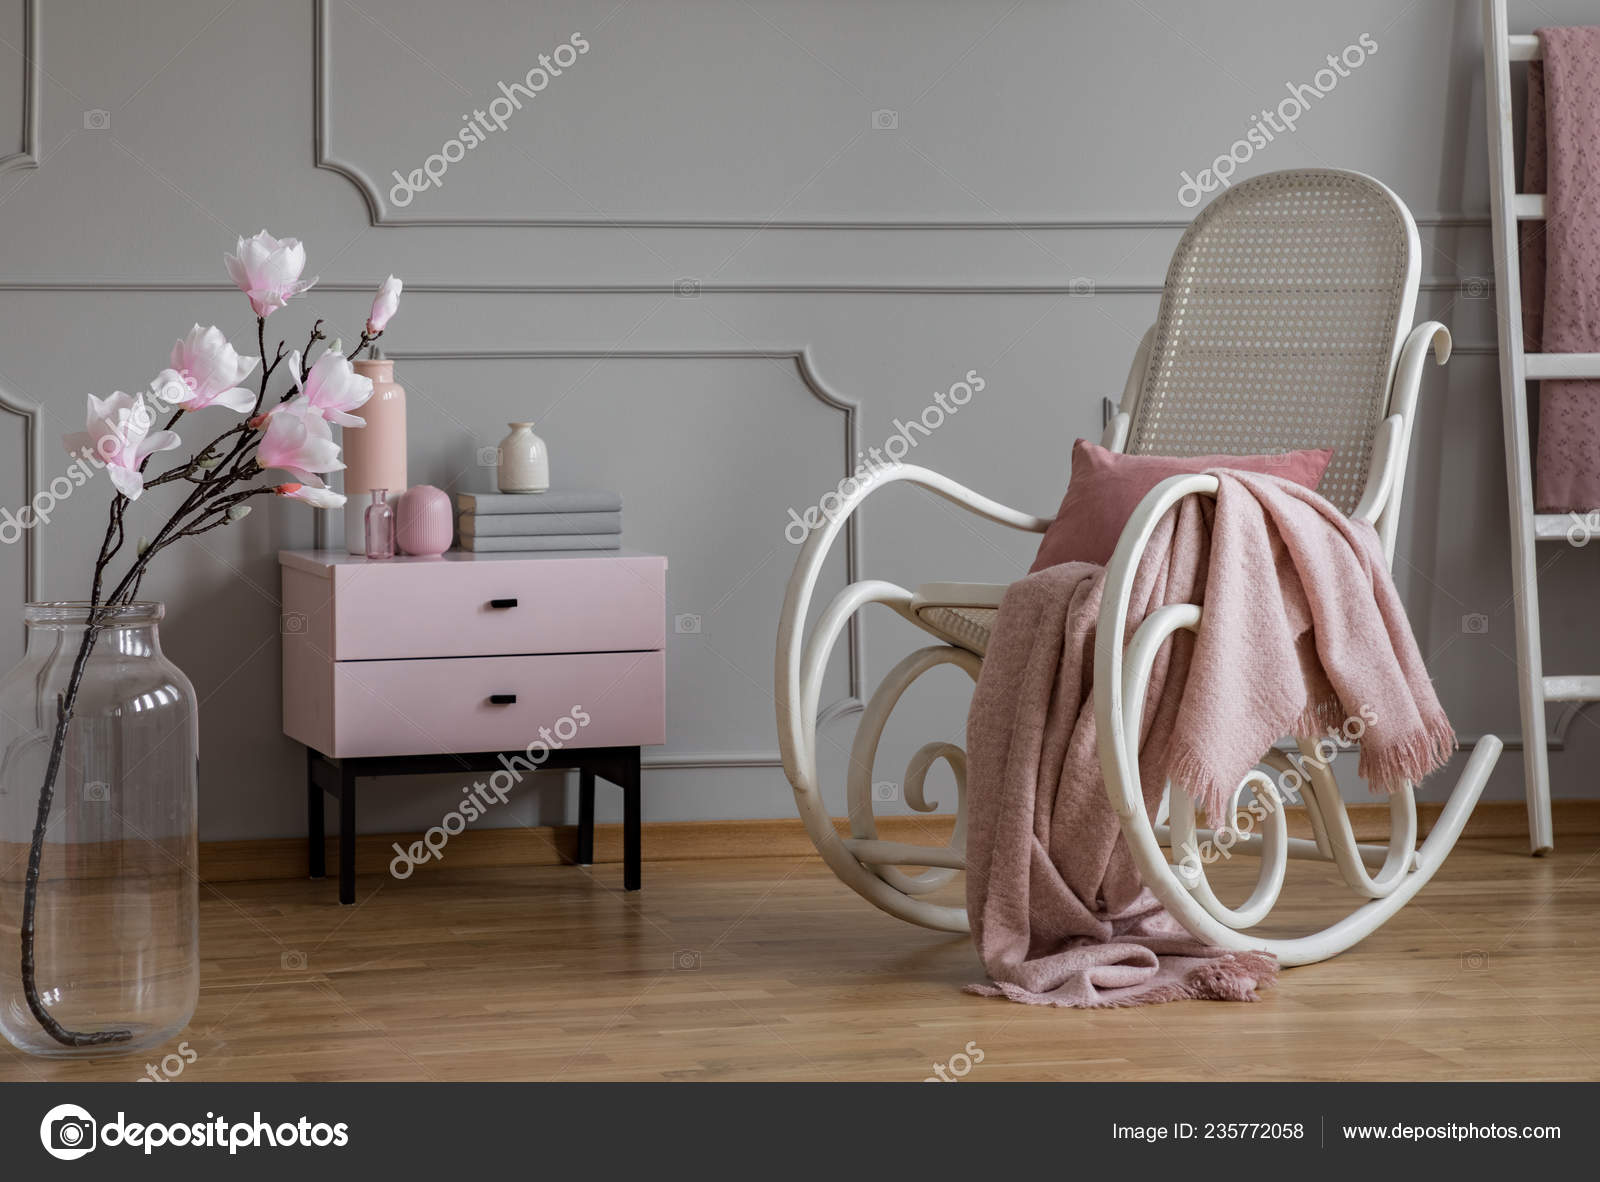 Flowers Rocking Chair Blanket Grey Pink Living Room Interior Cabinet Stock Photo C Photographee Eu 235772058